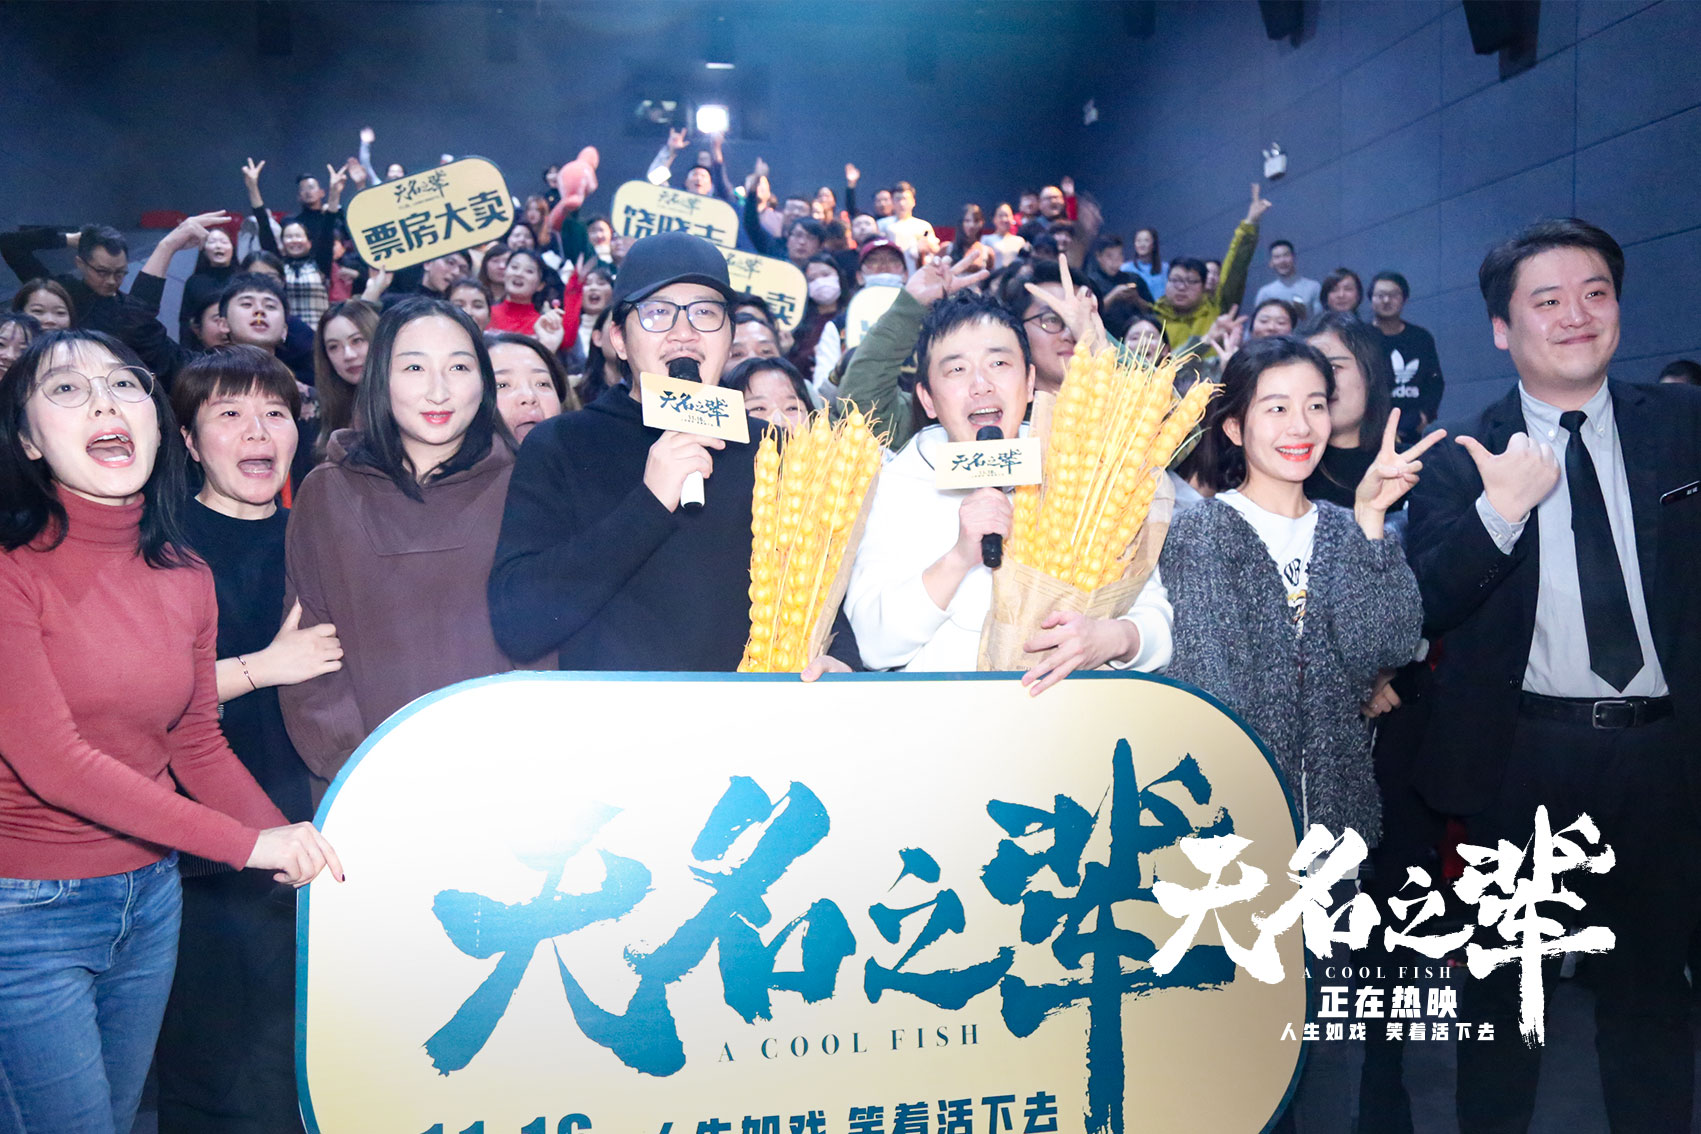 Xiaozhi rao binlong pan nobody' hit 172 million yuan in the first week of its zhengzhou road show, leading to a two-hit trend.